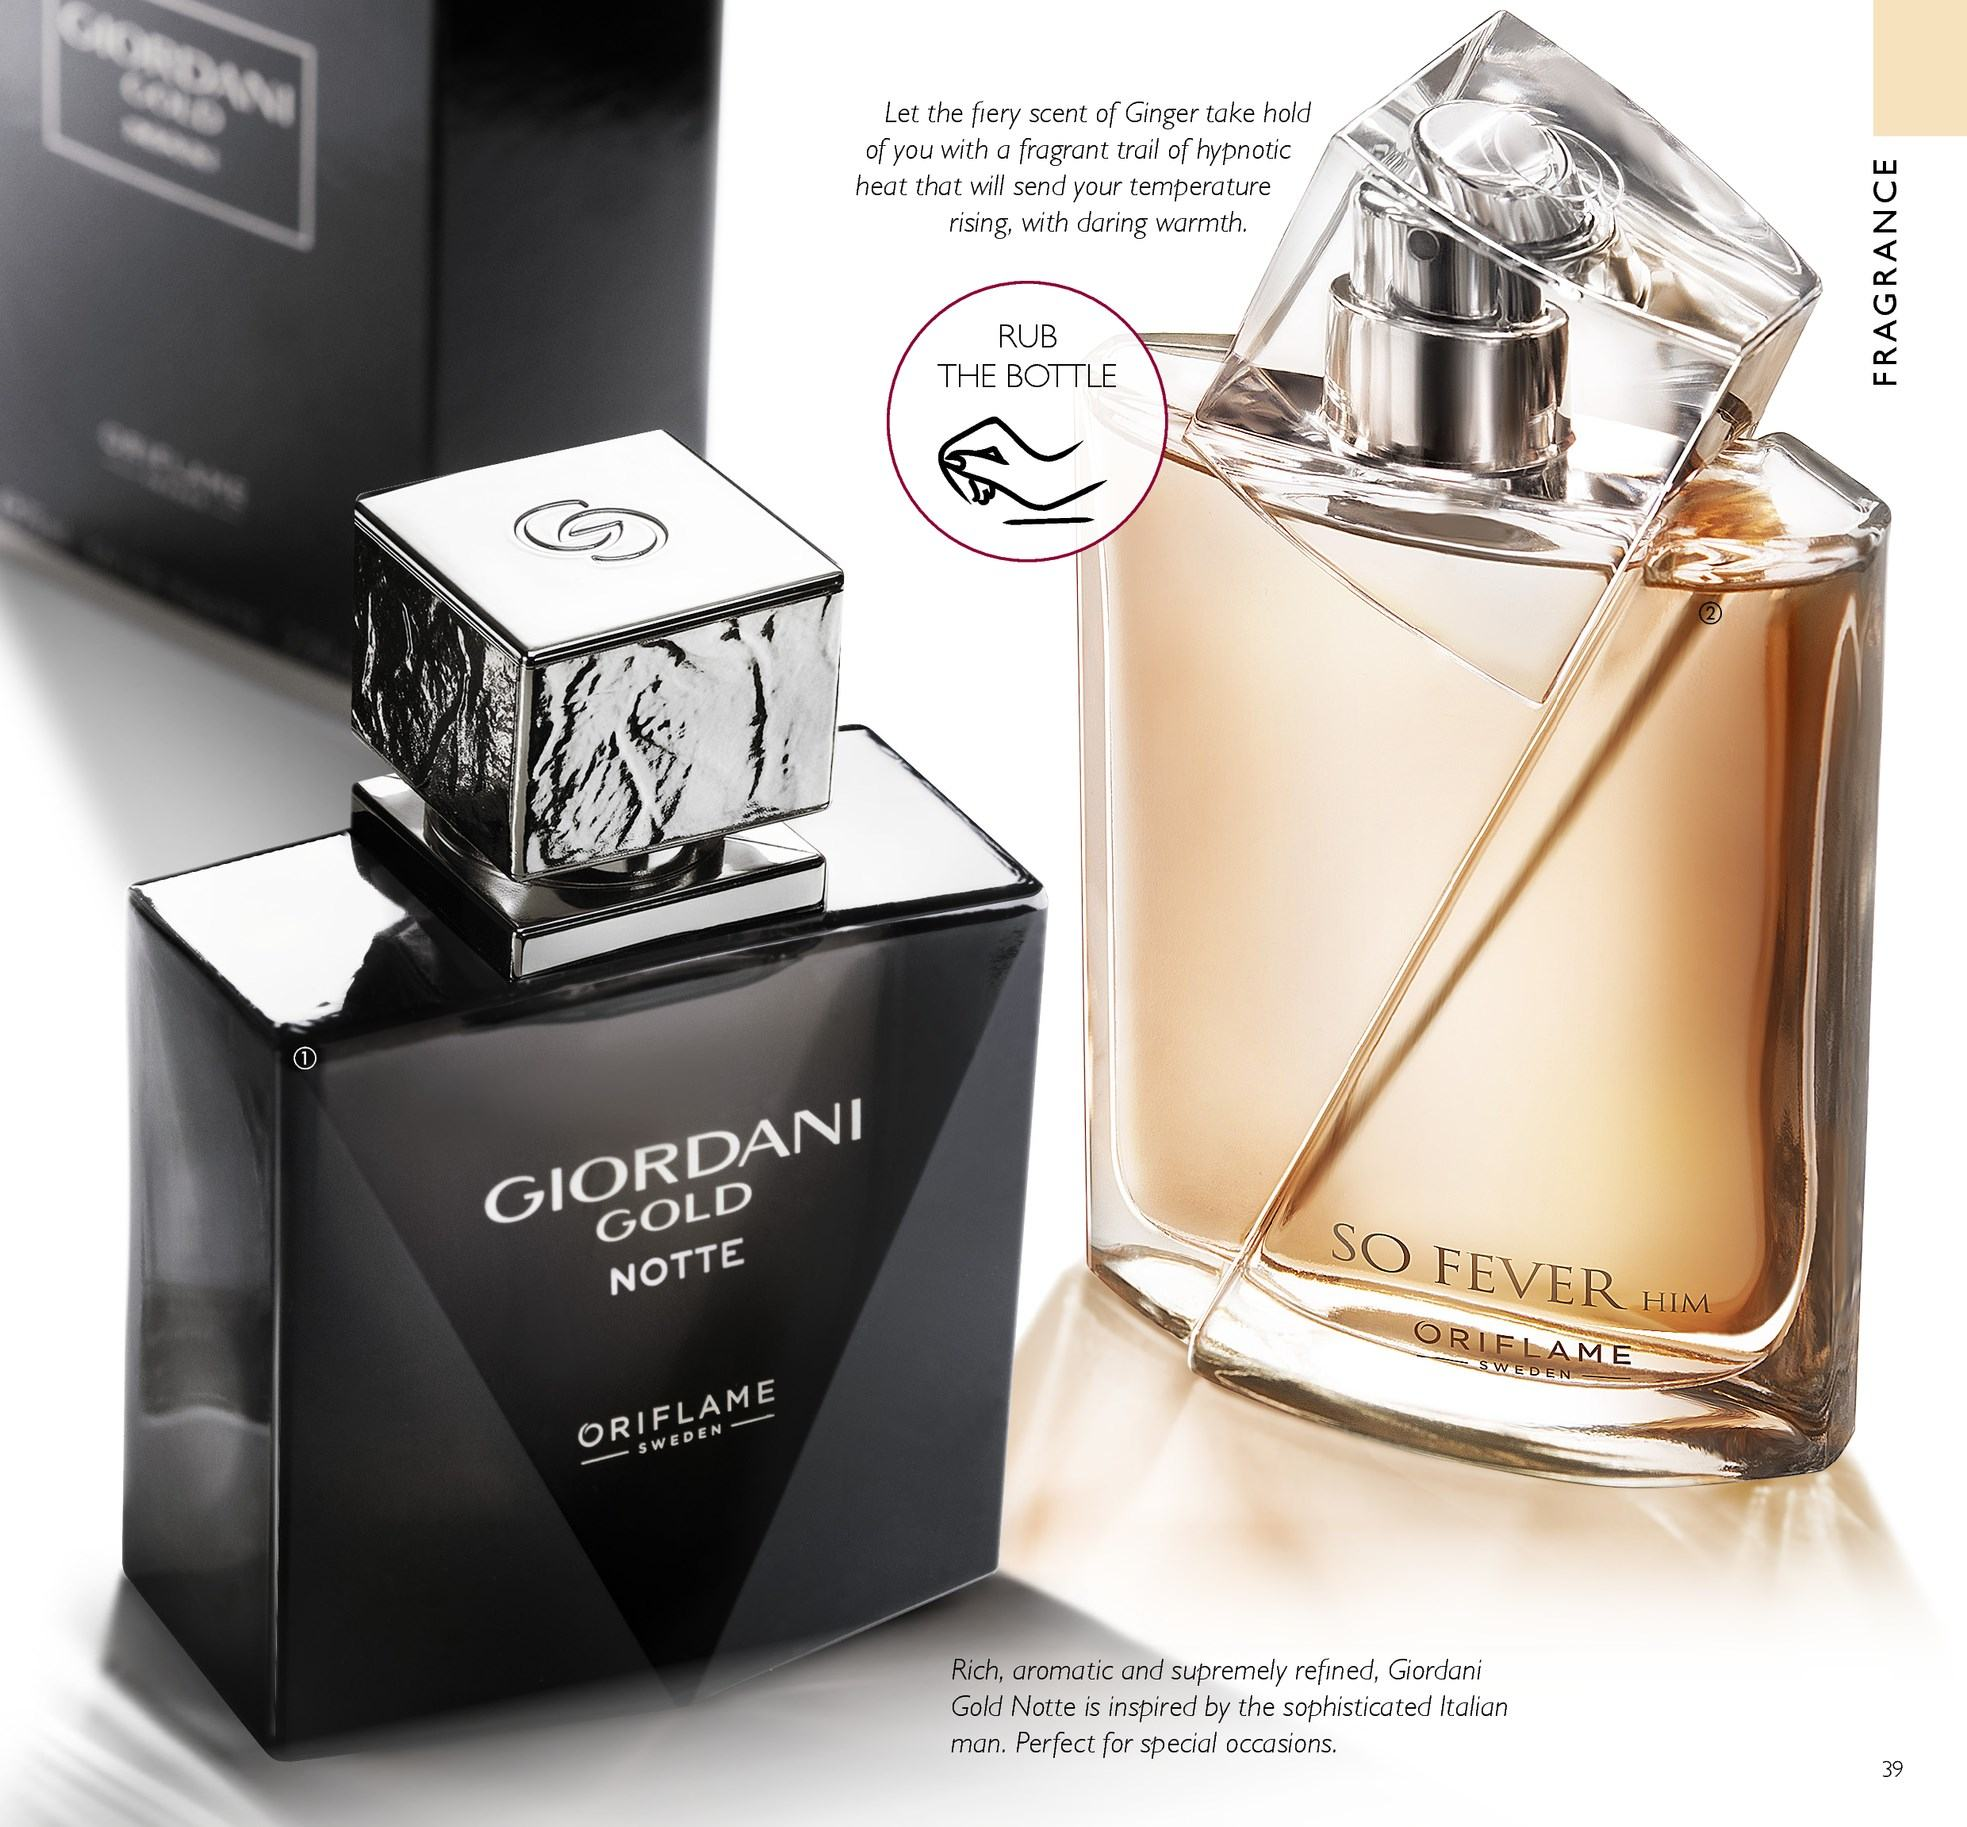 Oriflame offer  - 13.4.2018 - 3.5.2018 - Sales products - Giordani Gold. Page 39.